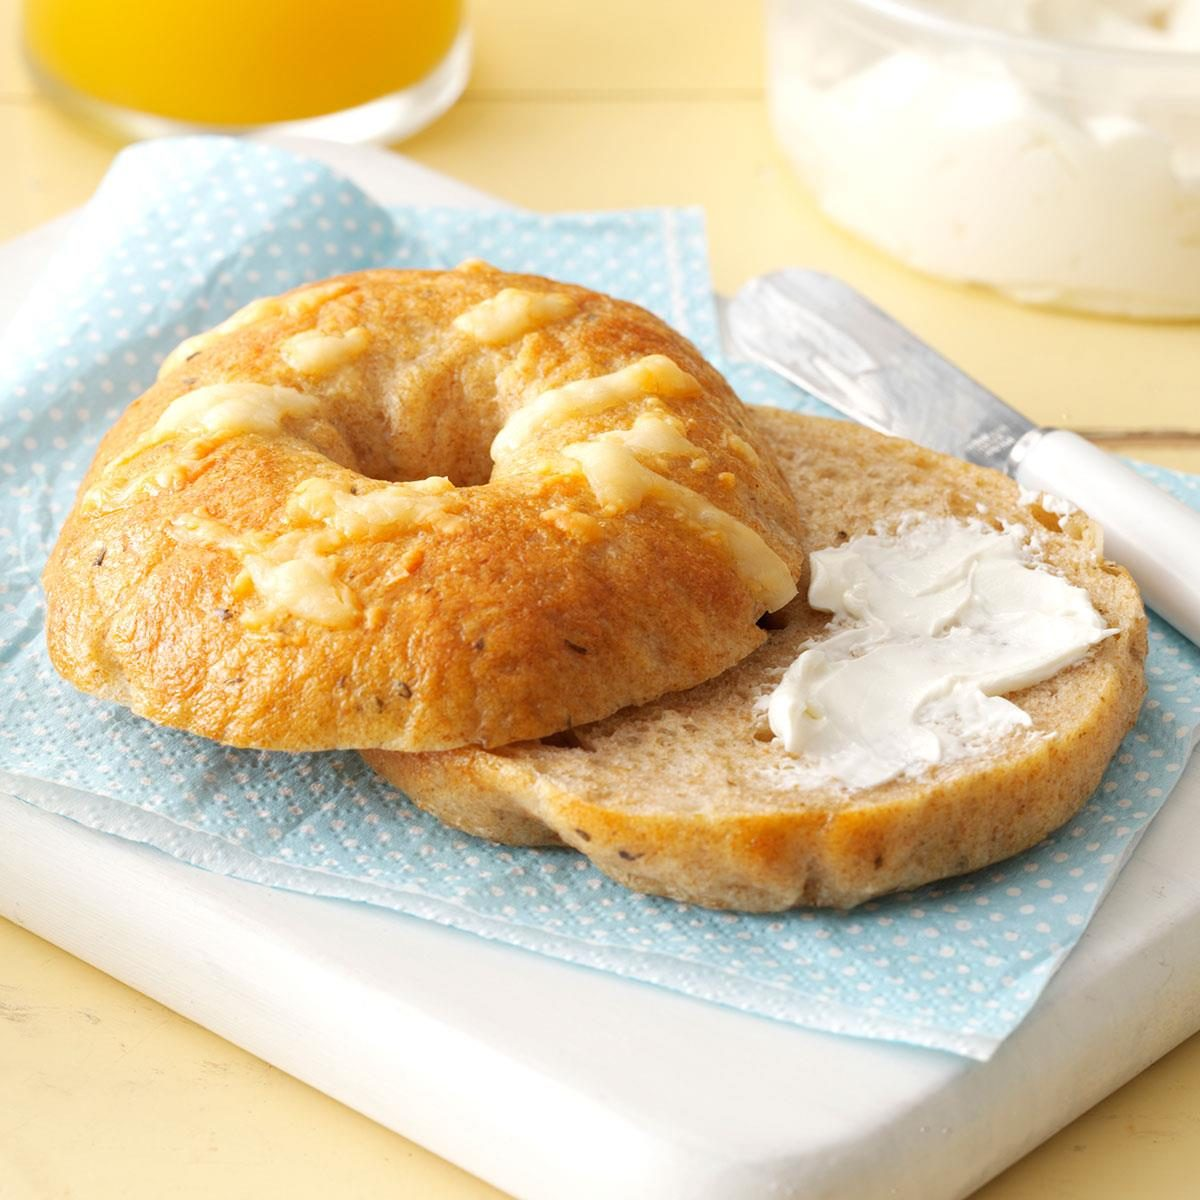 Inspired by: Einstein Bros. Bagels Asiago Bagel